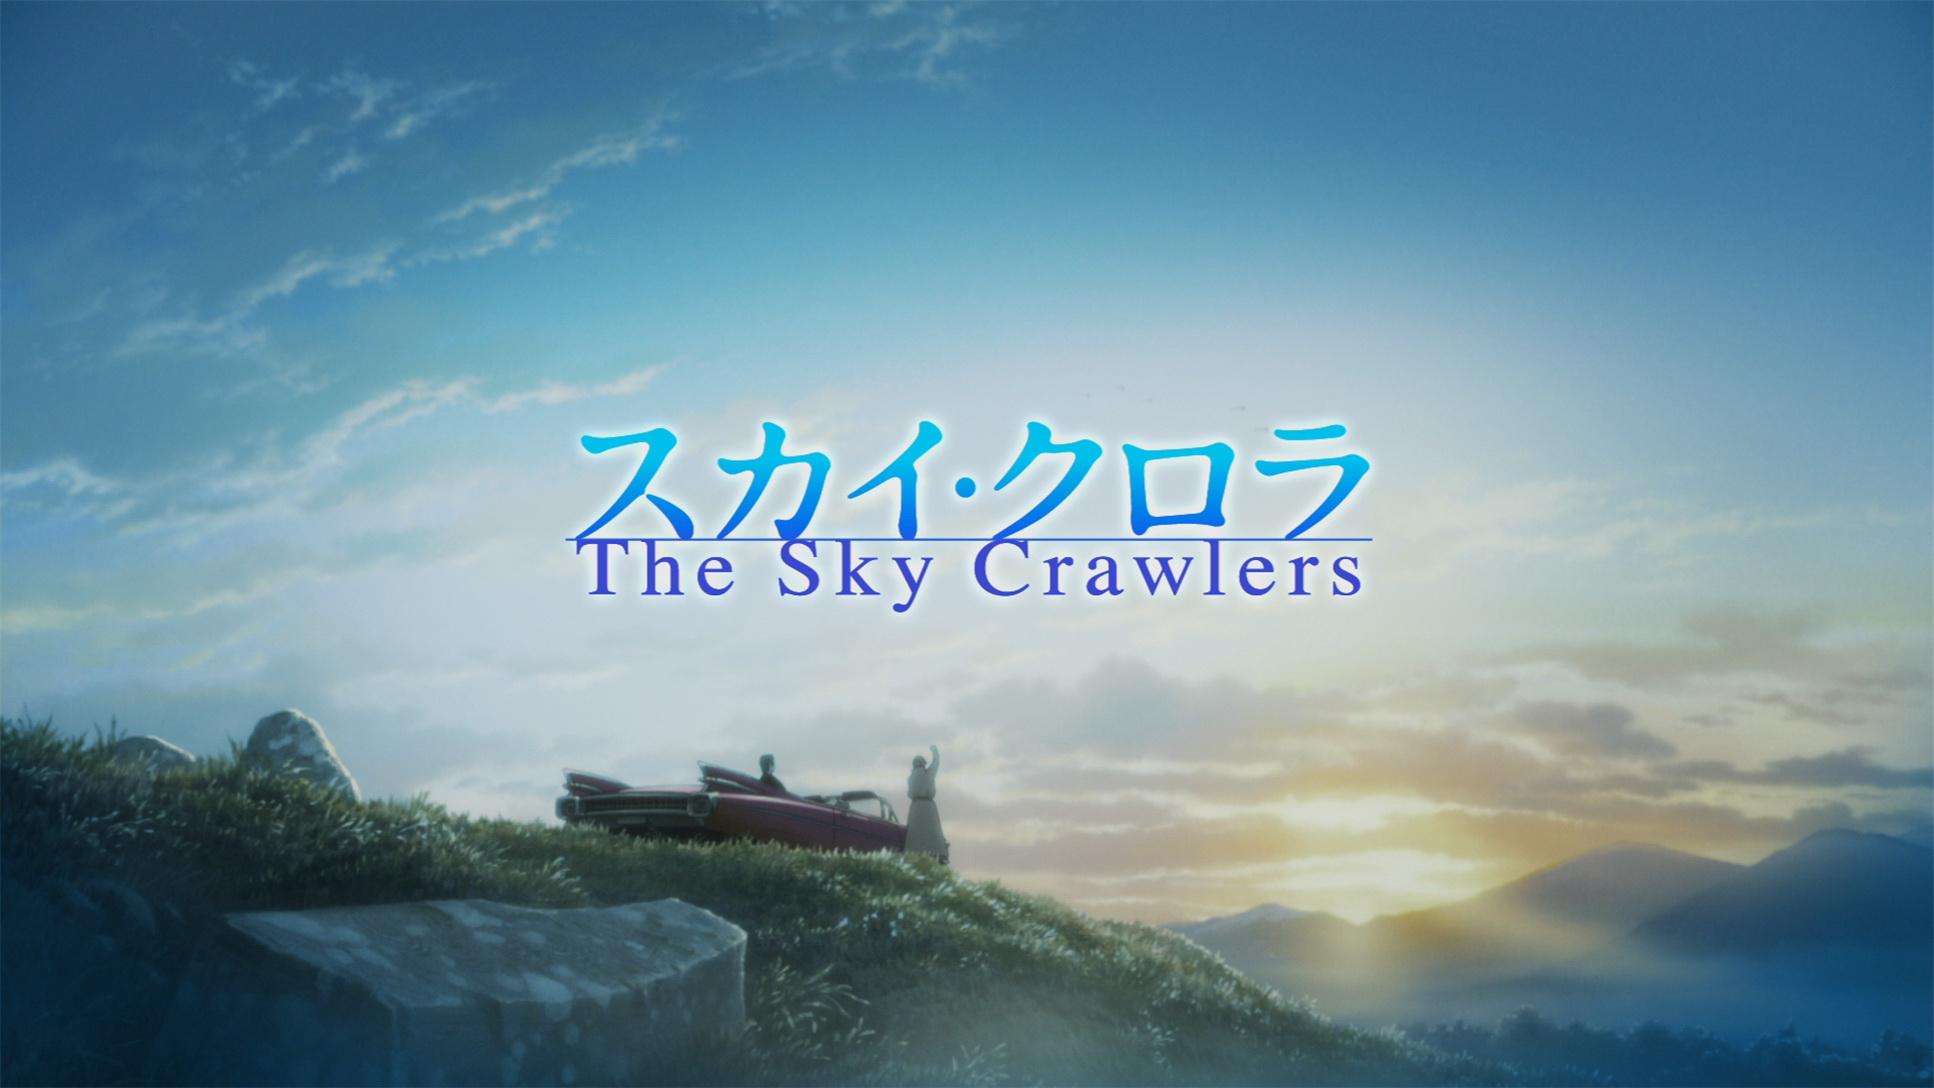 grohotuncom-the-sky-crawlers-promo-2-1080p-h264-6-chts003